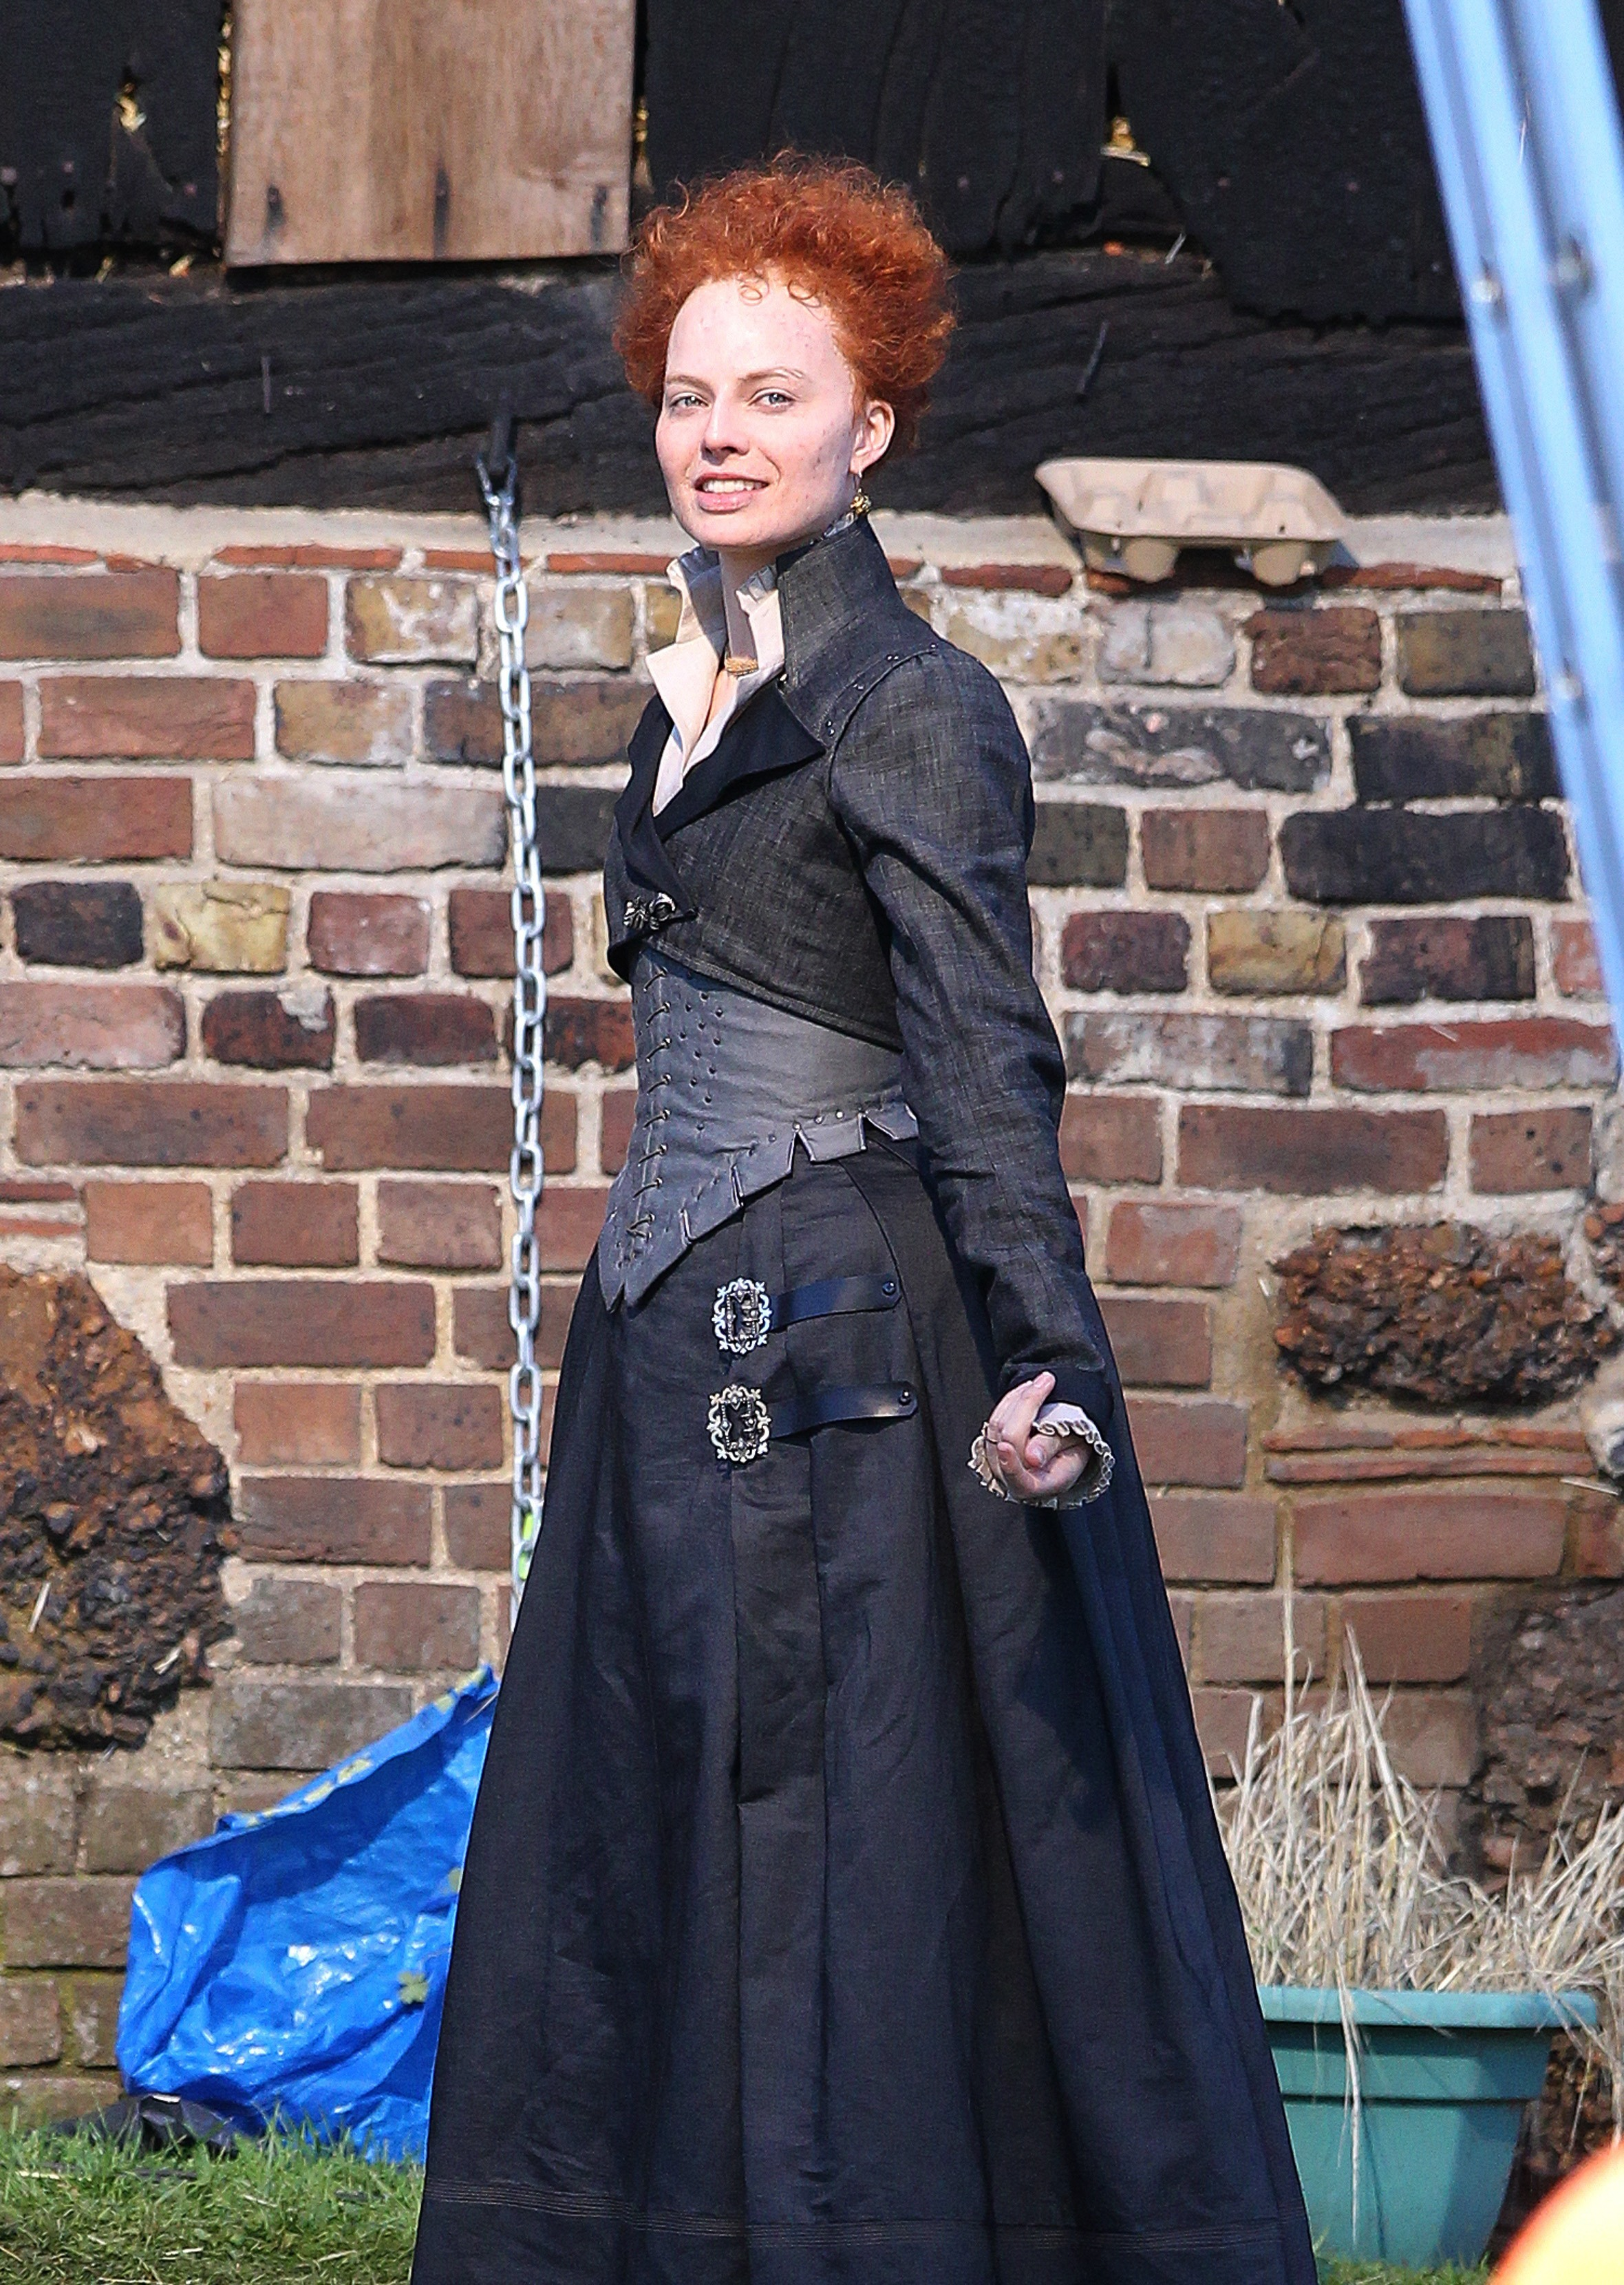 Margot Robbie as Queen Elizabeth filming Mary Quee